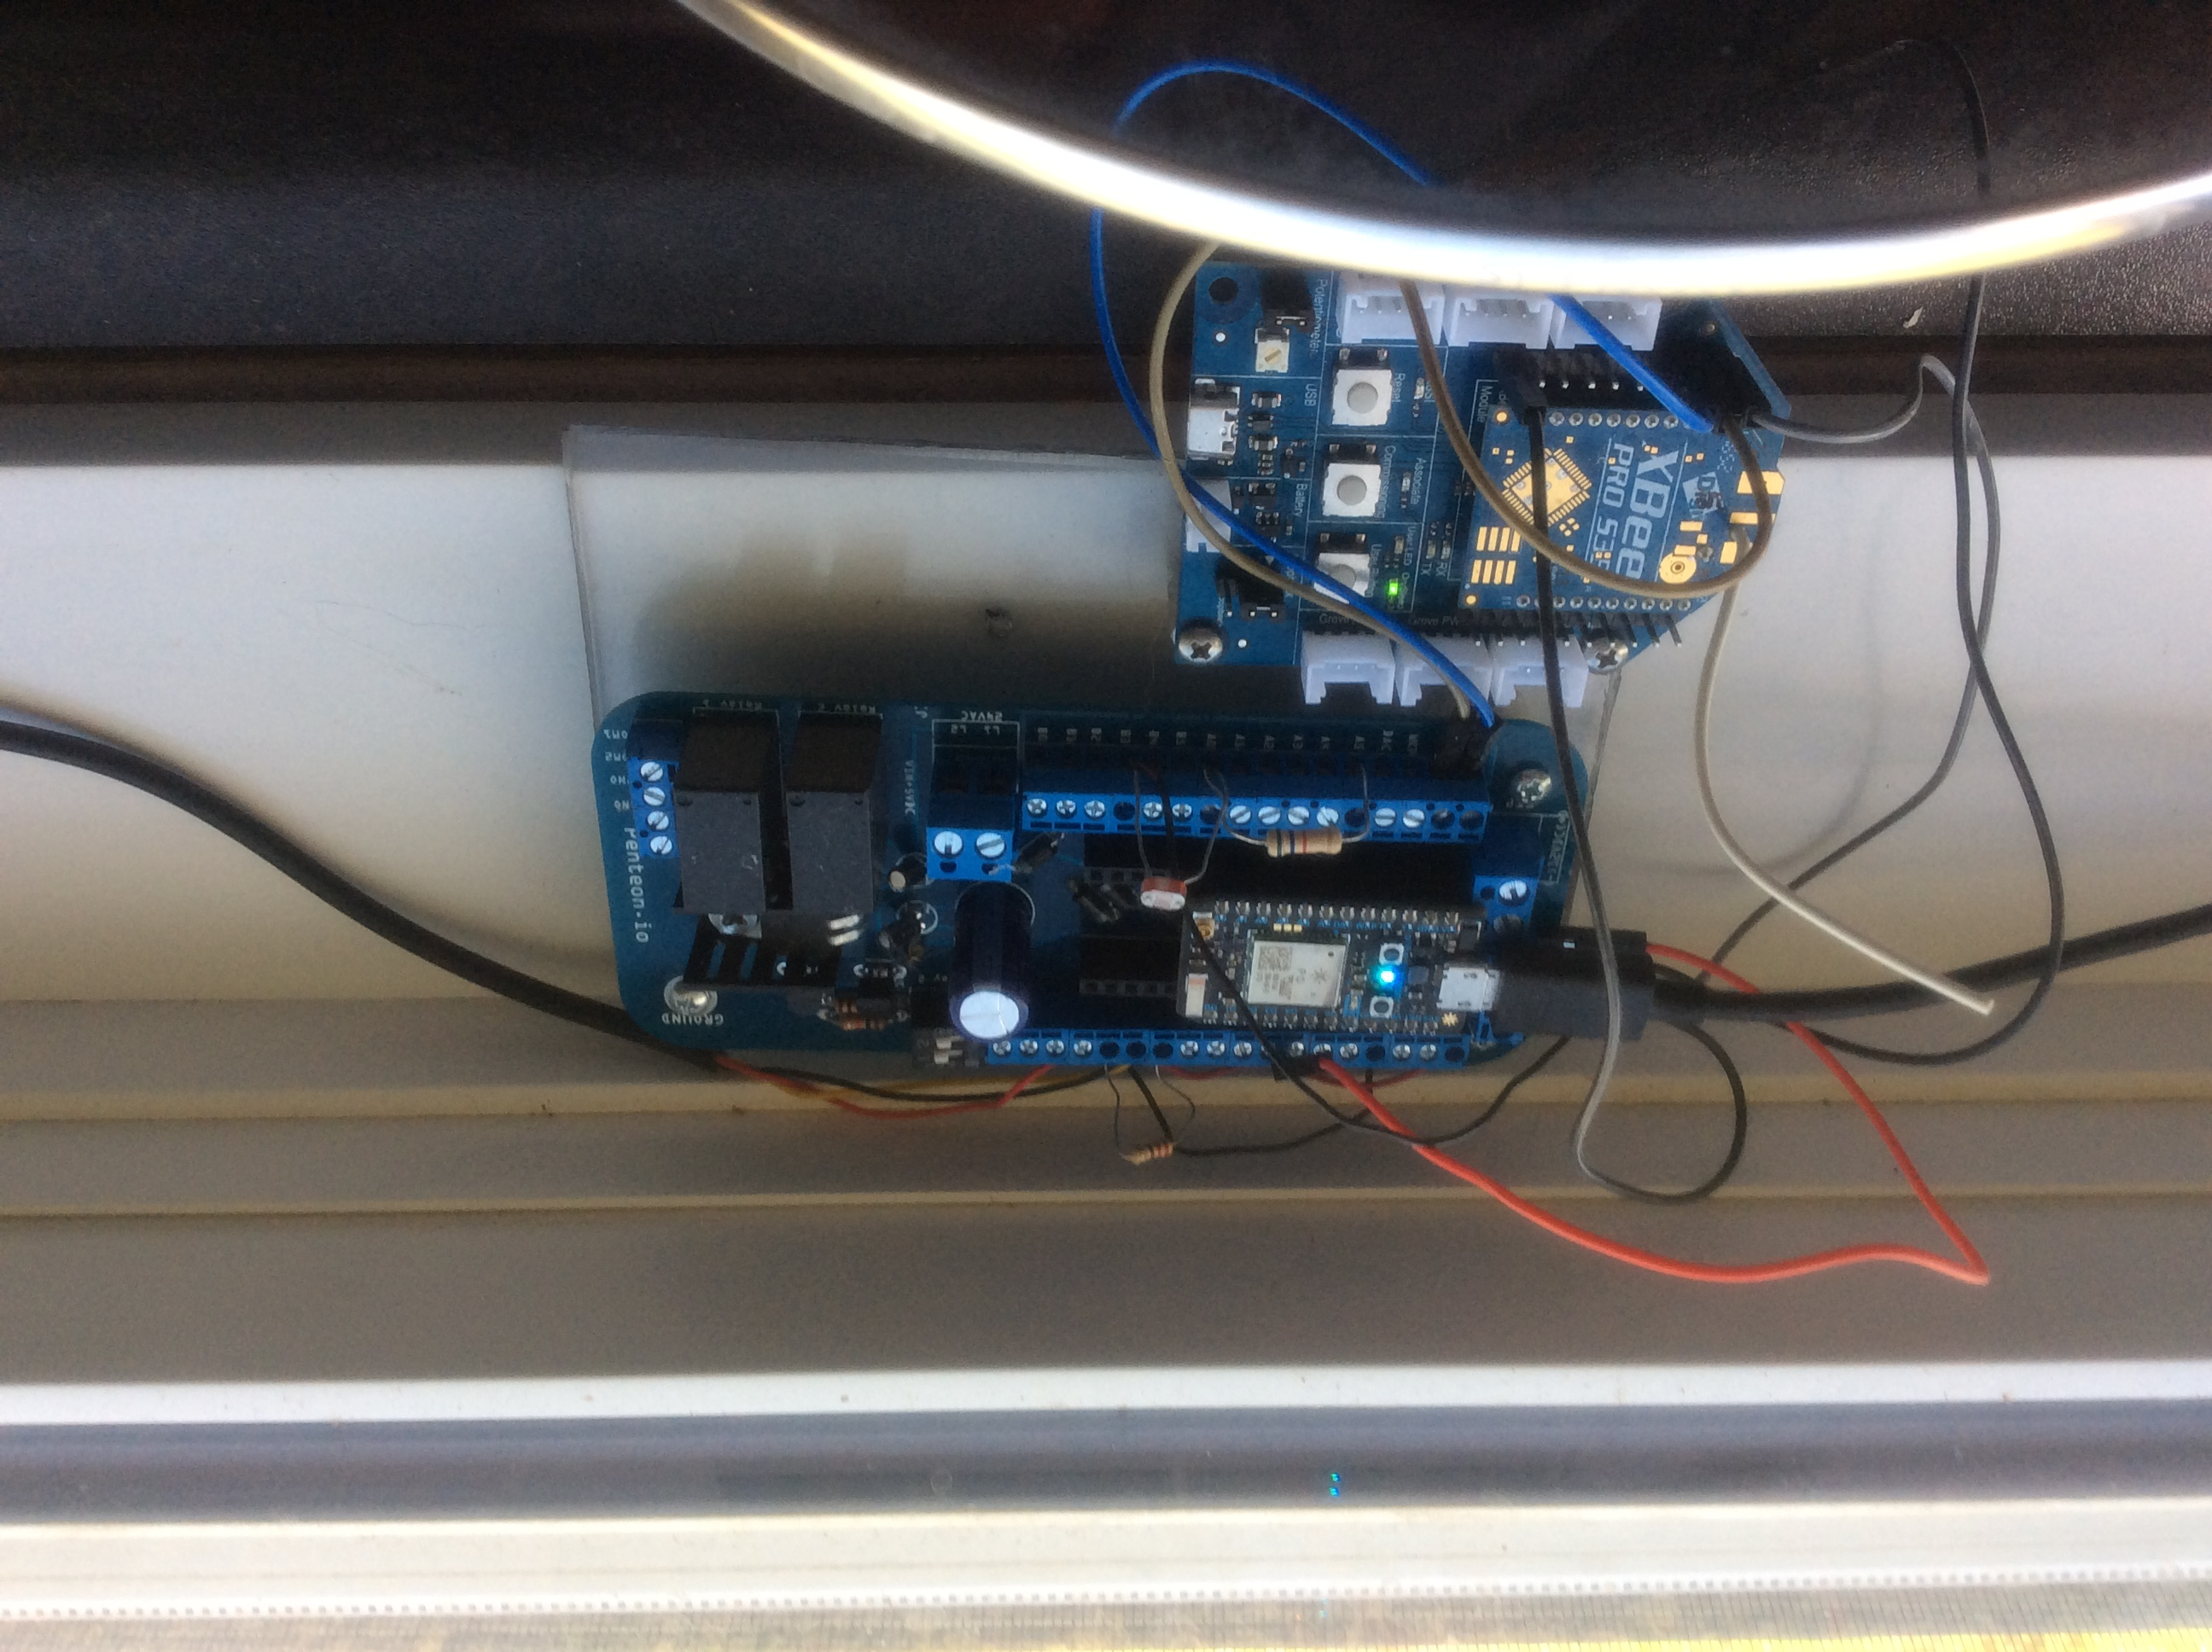 Picture of Particle Power Shield and XBee Configuration